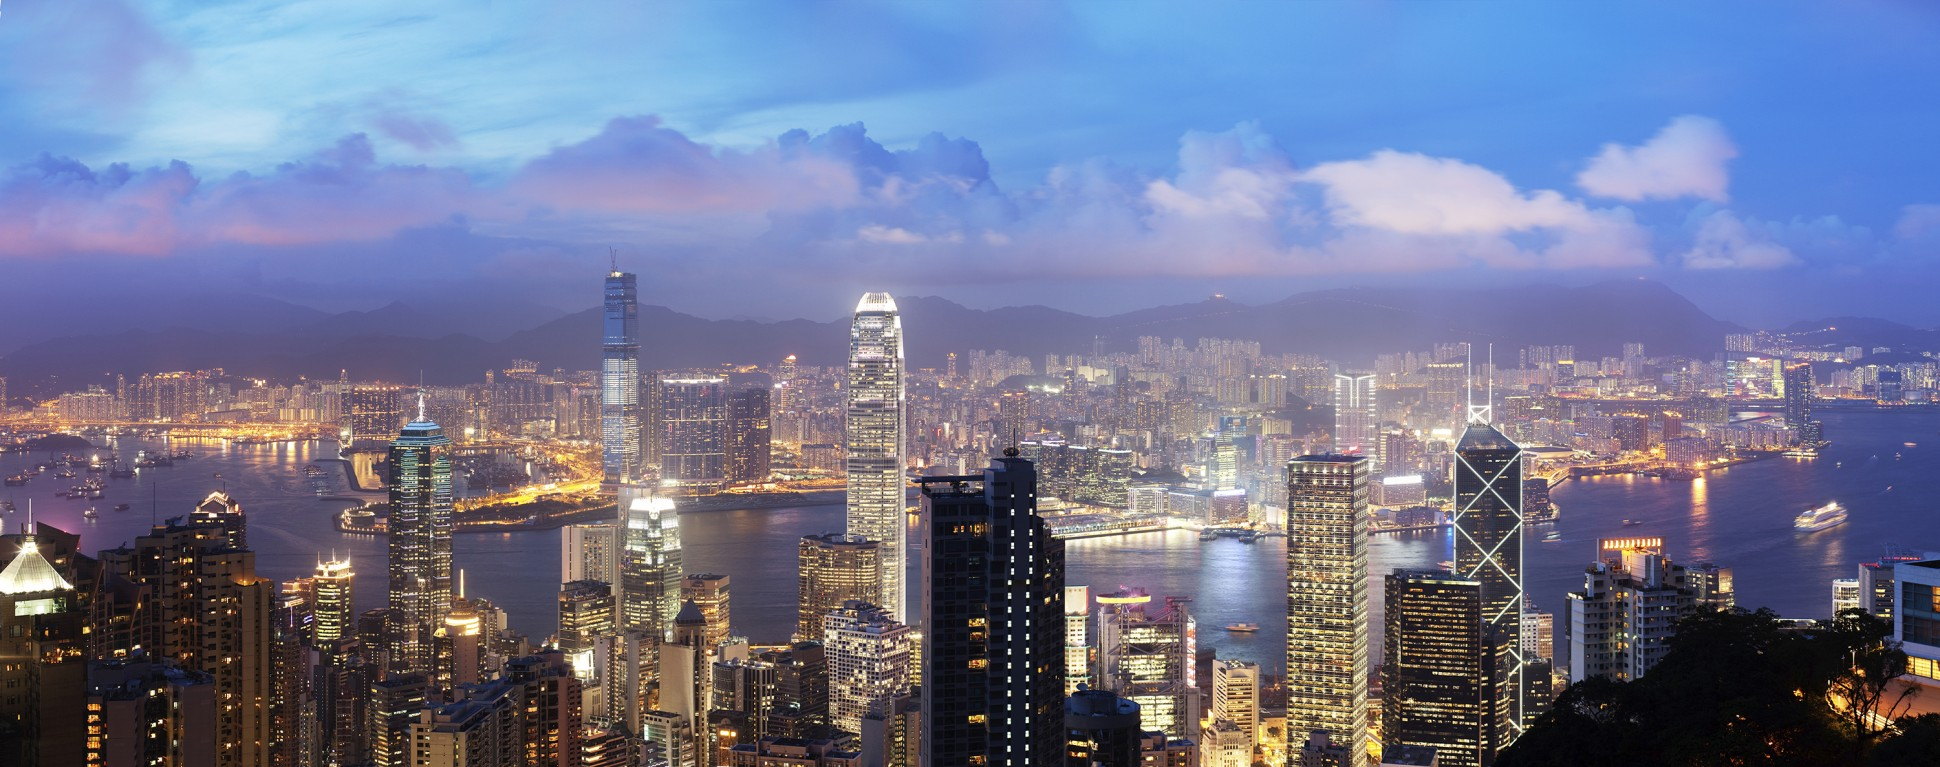 Hong Kong real estate market crashing?